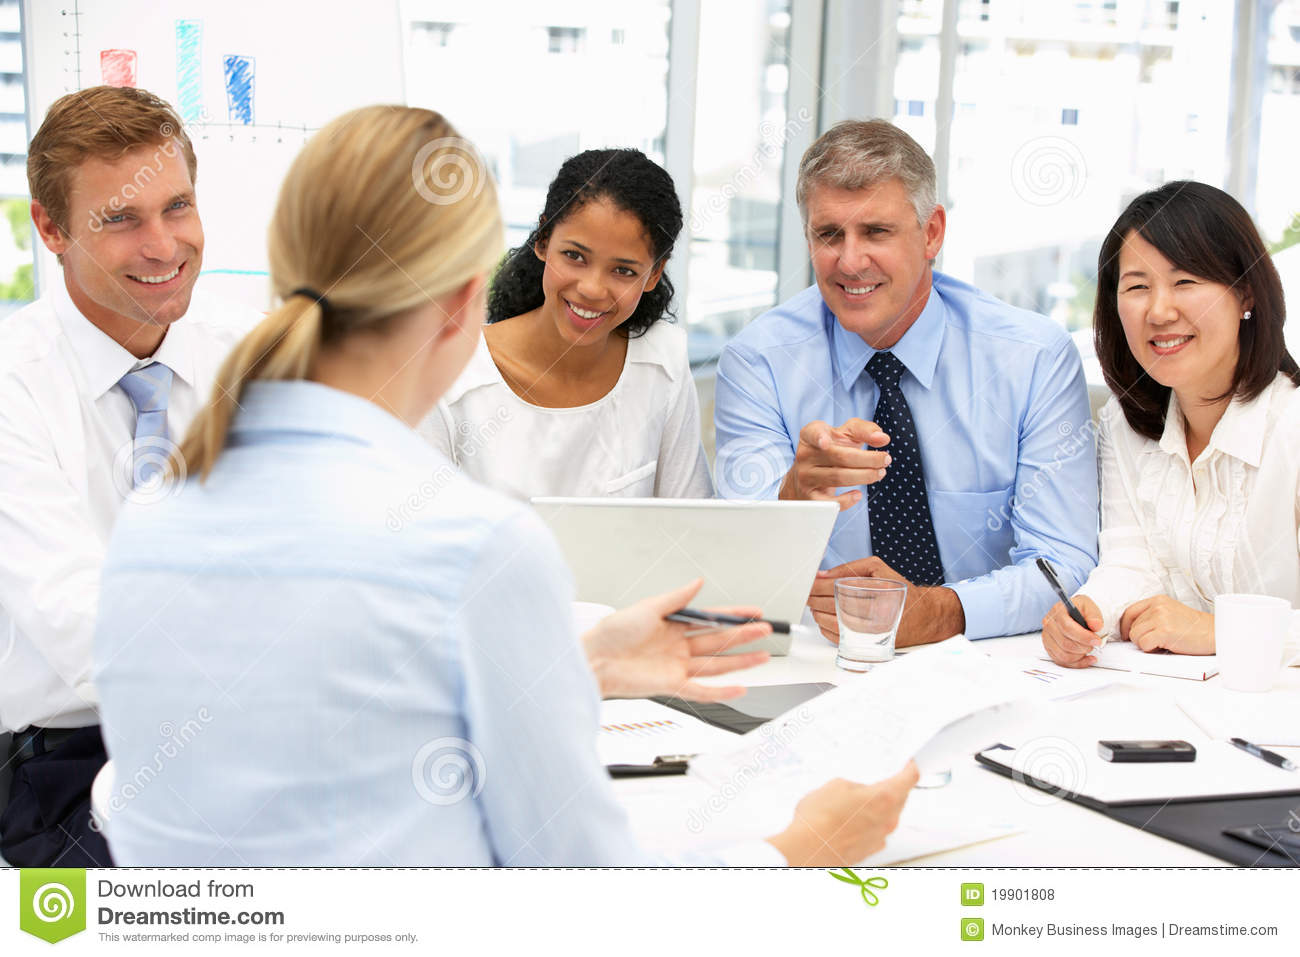 Recruitment Office Meeting Royalty Free Stock Photos Image 19901808